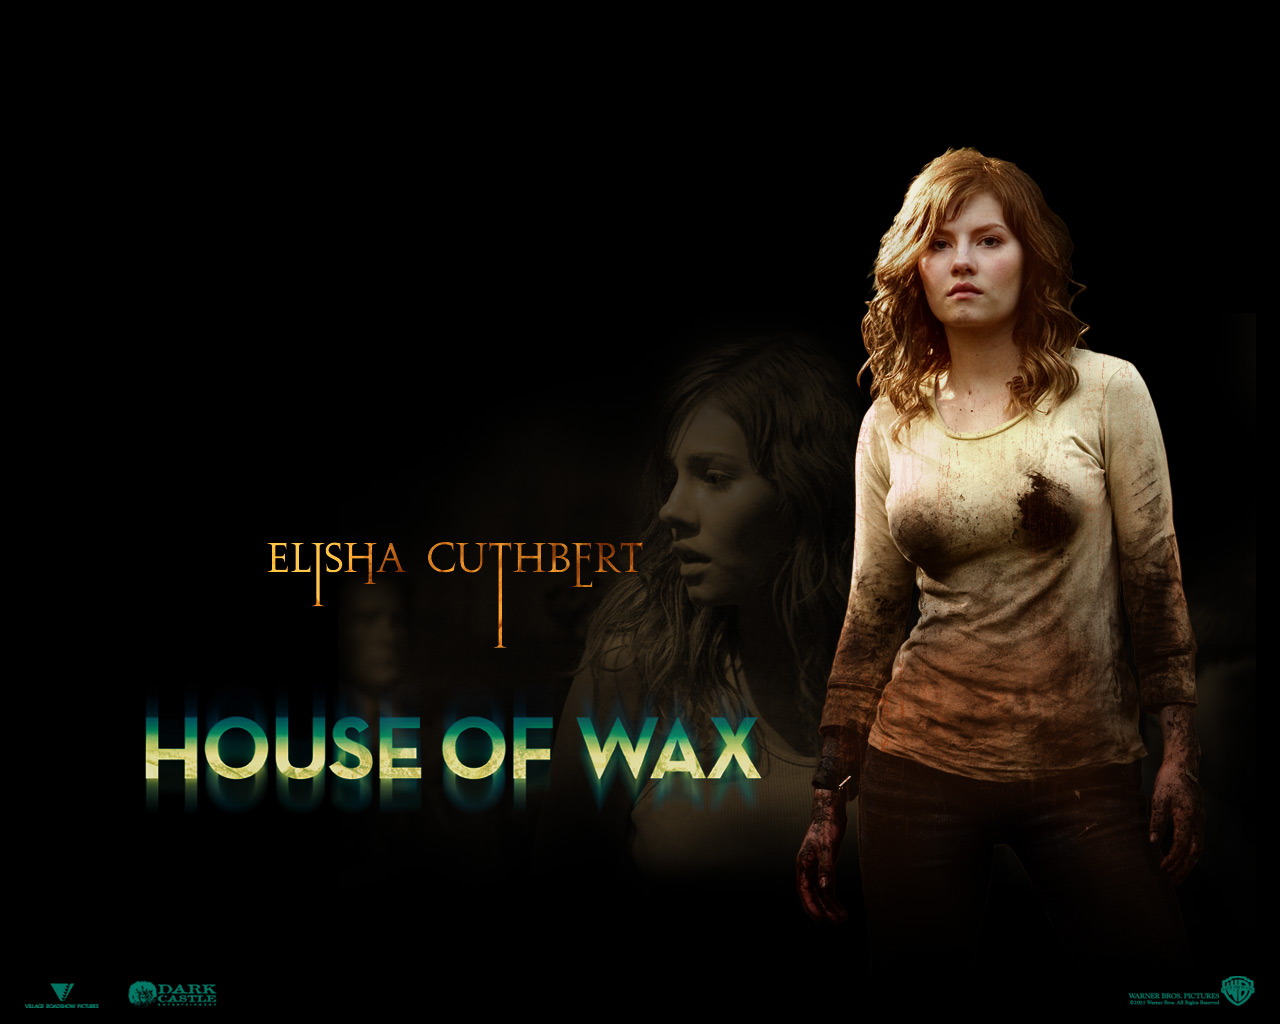 http://1.bp.blogspot.com/_toEVYwWweSk/SxFHY52yurI/AAAAAAAACBk/wdDrXdPoBCY/s1600/Elisha_Cuthbert_in_House_of_Wax_Wallpaper_1_1280.jpg